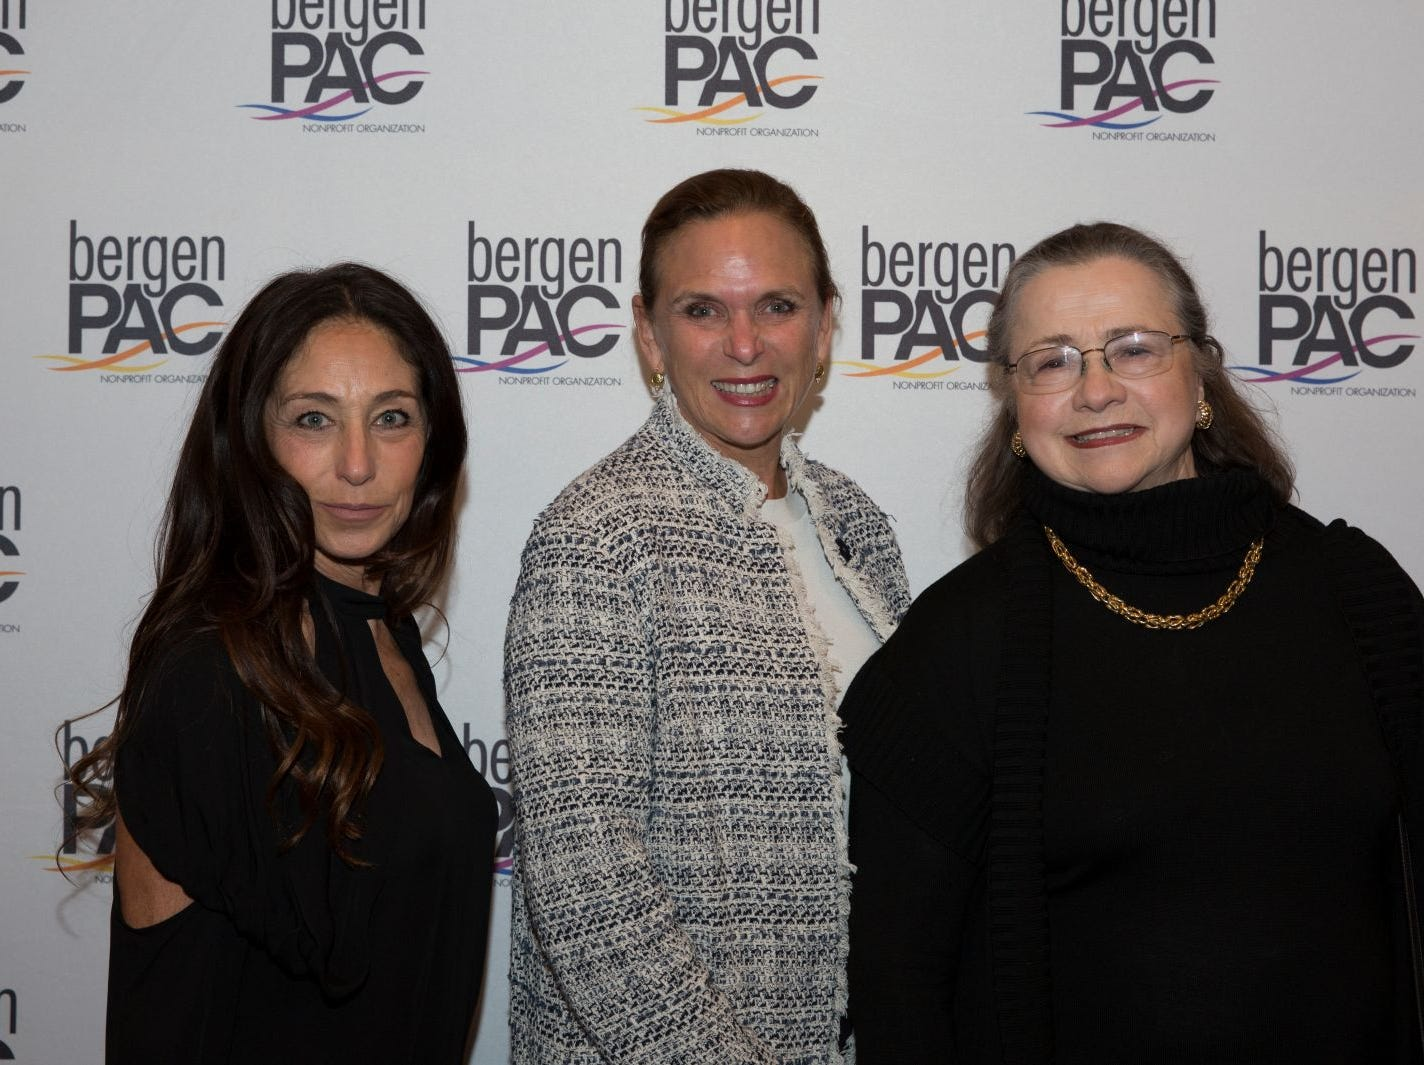 Roberta Mathes, Shannon Eadon, Rosalie Berlin. BergenPAC held its annual fall gala featuring John Fogerty in Englewood. This year's honoree was Fernando Garip, from Wilmington Trust and M&T Bank. 11/08/2018